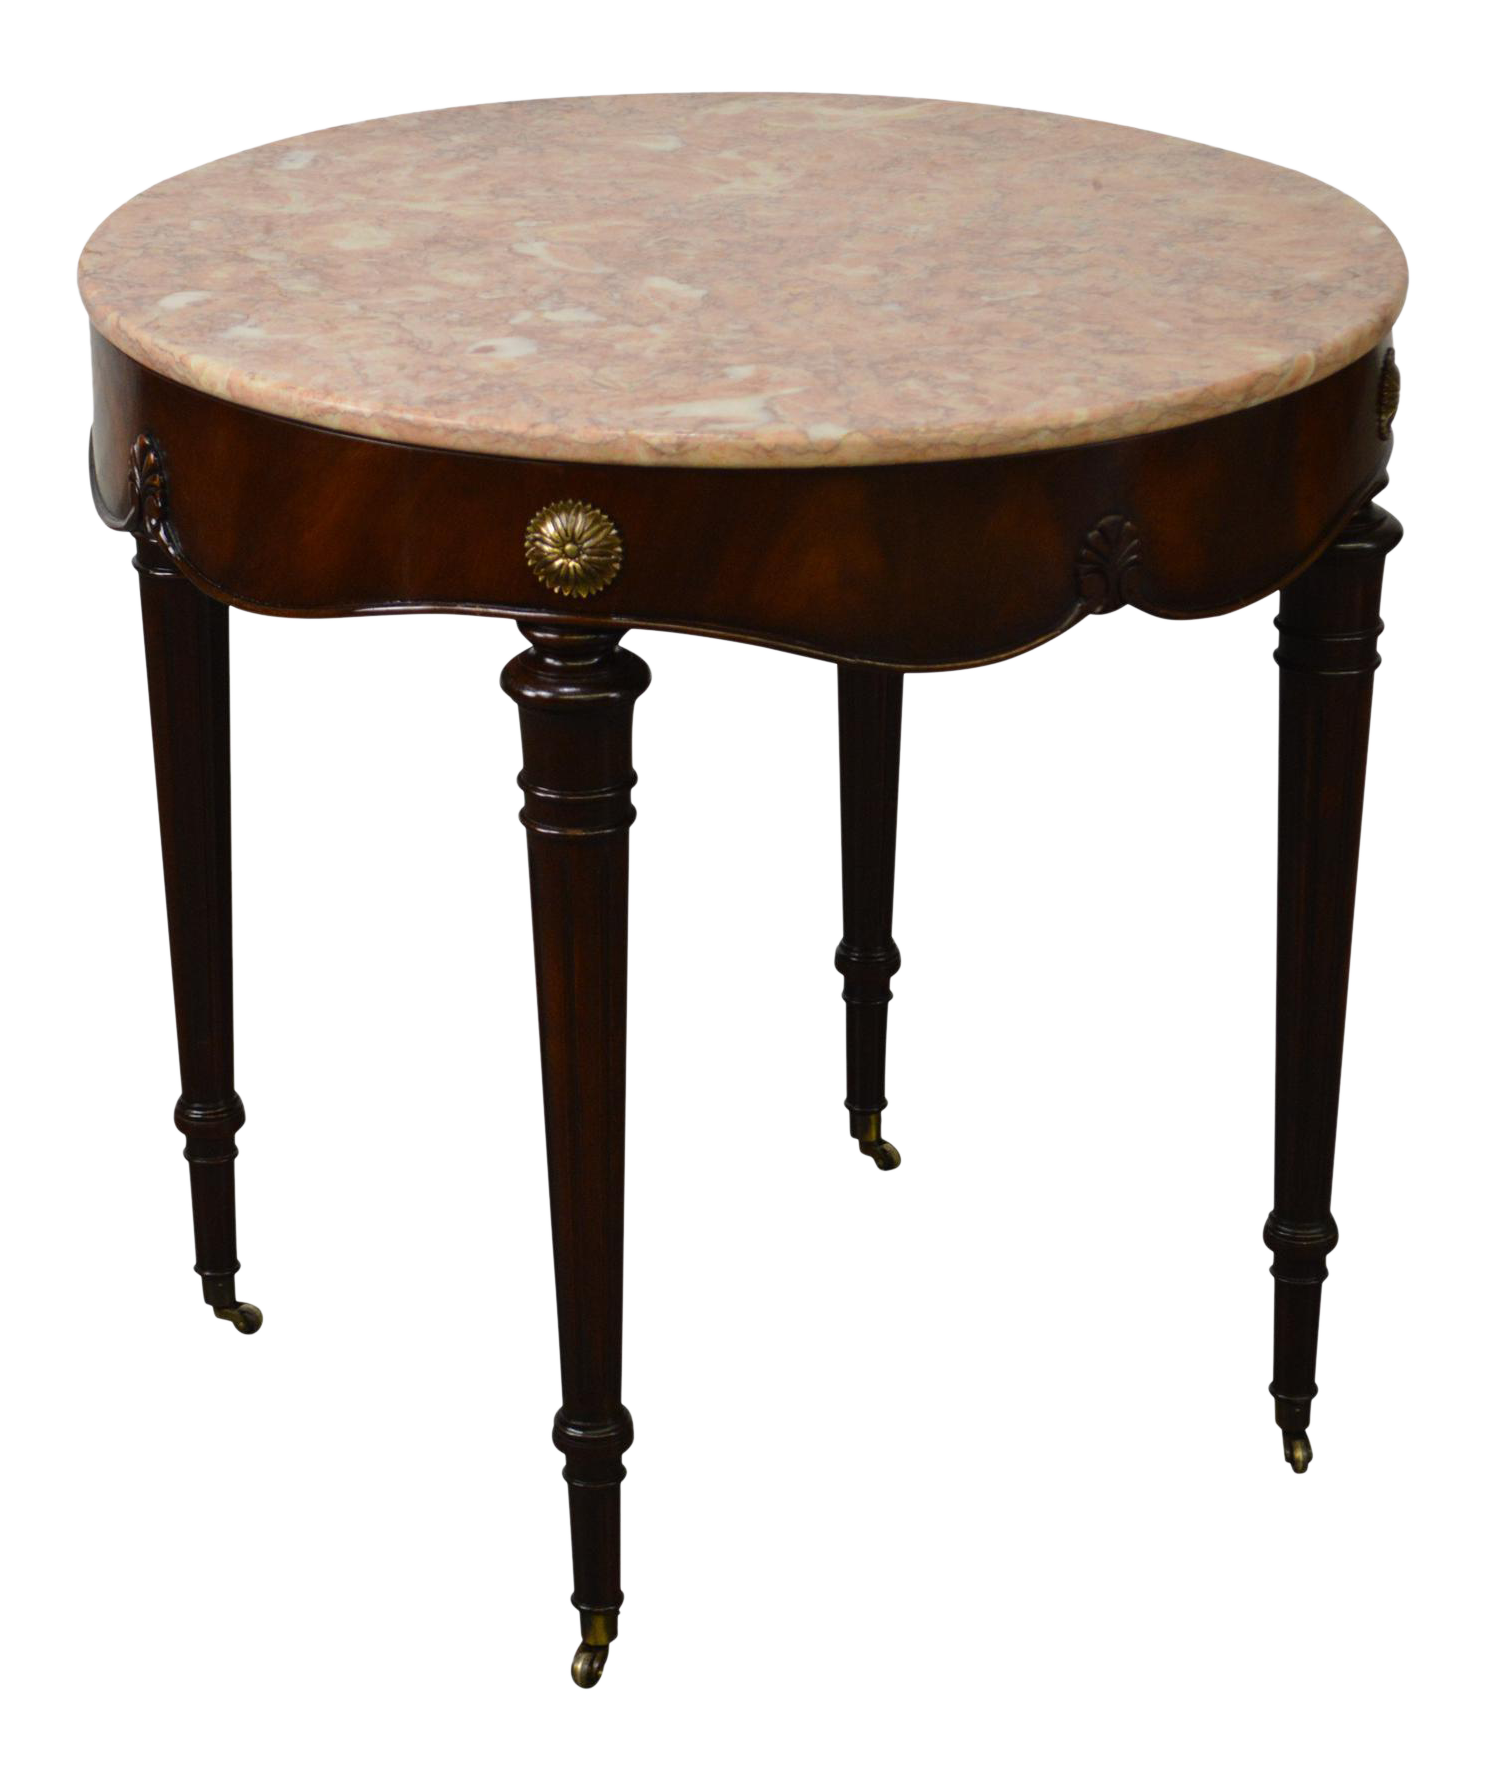 Genial Weiman 1950s Flame Mahogany Round Regency Style Marble Top Side Table